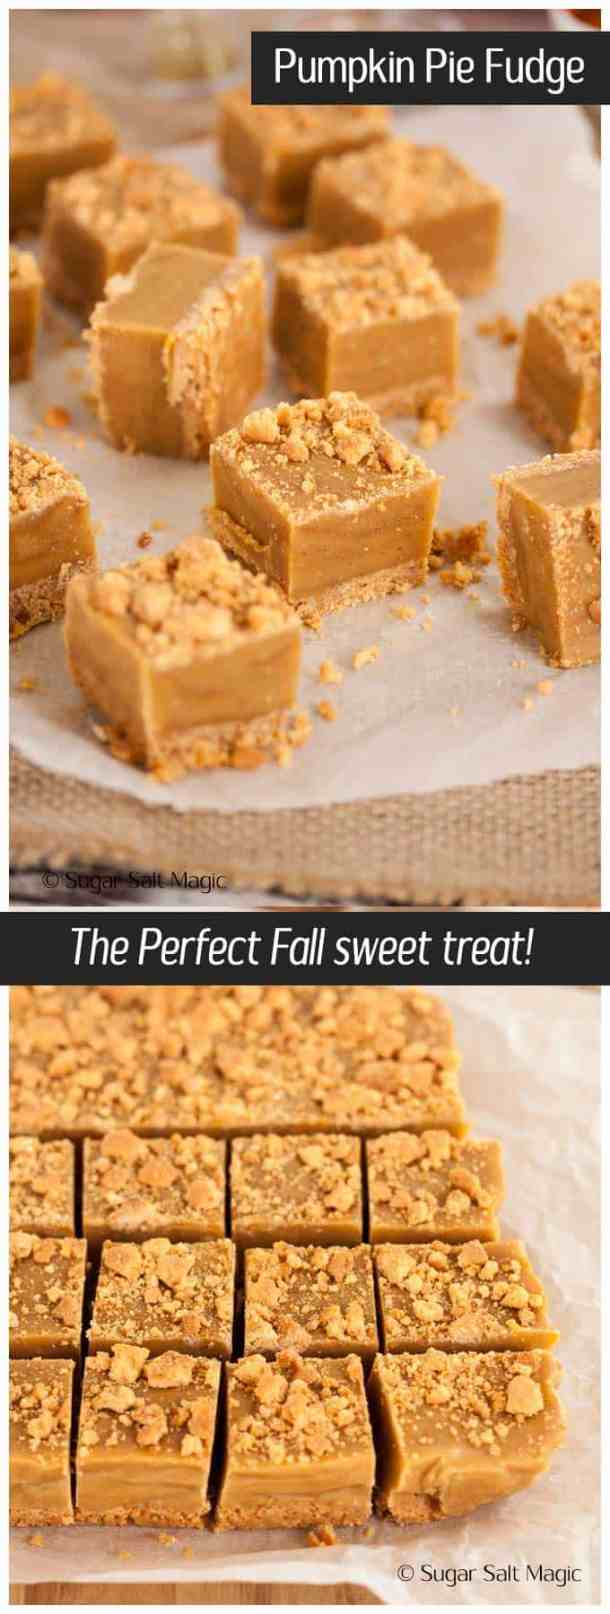 Pumpkin Pie Fudge. The cosy flavours of Autumn in a silky, smooth fudge with a crunchy no-bake biscuit base. #Autumn #fall